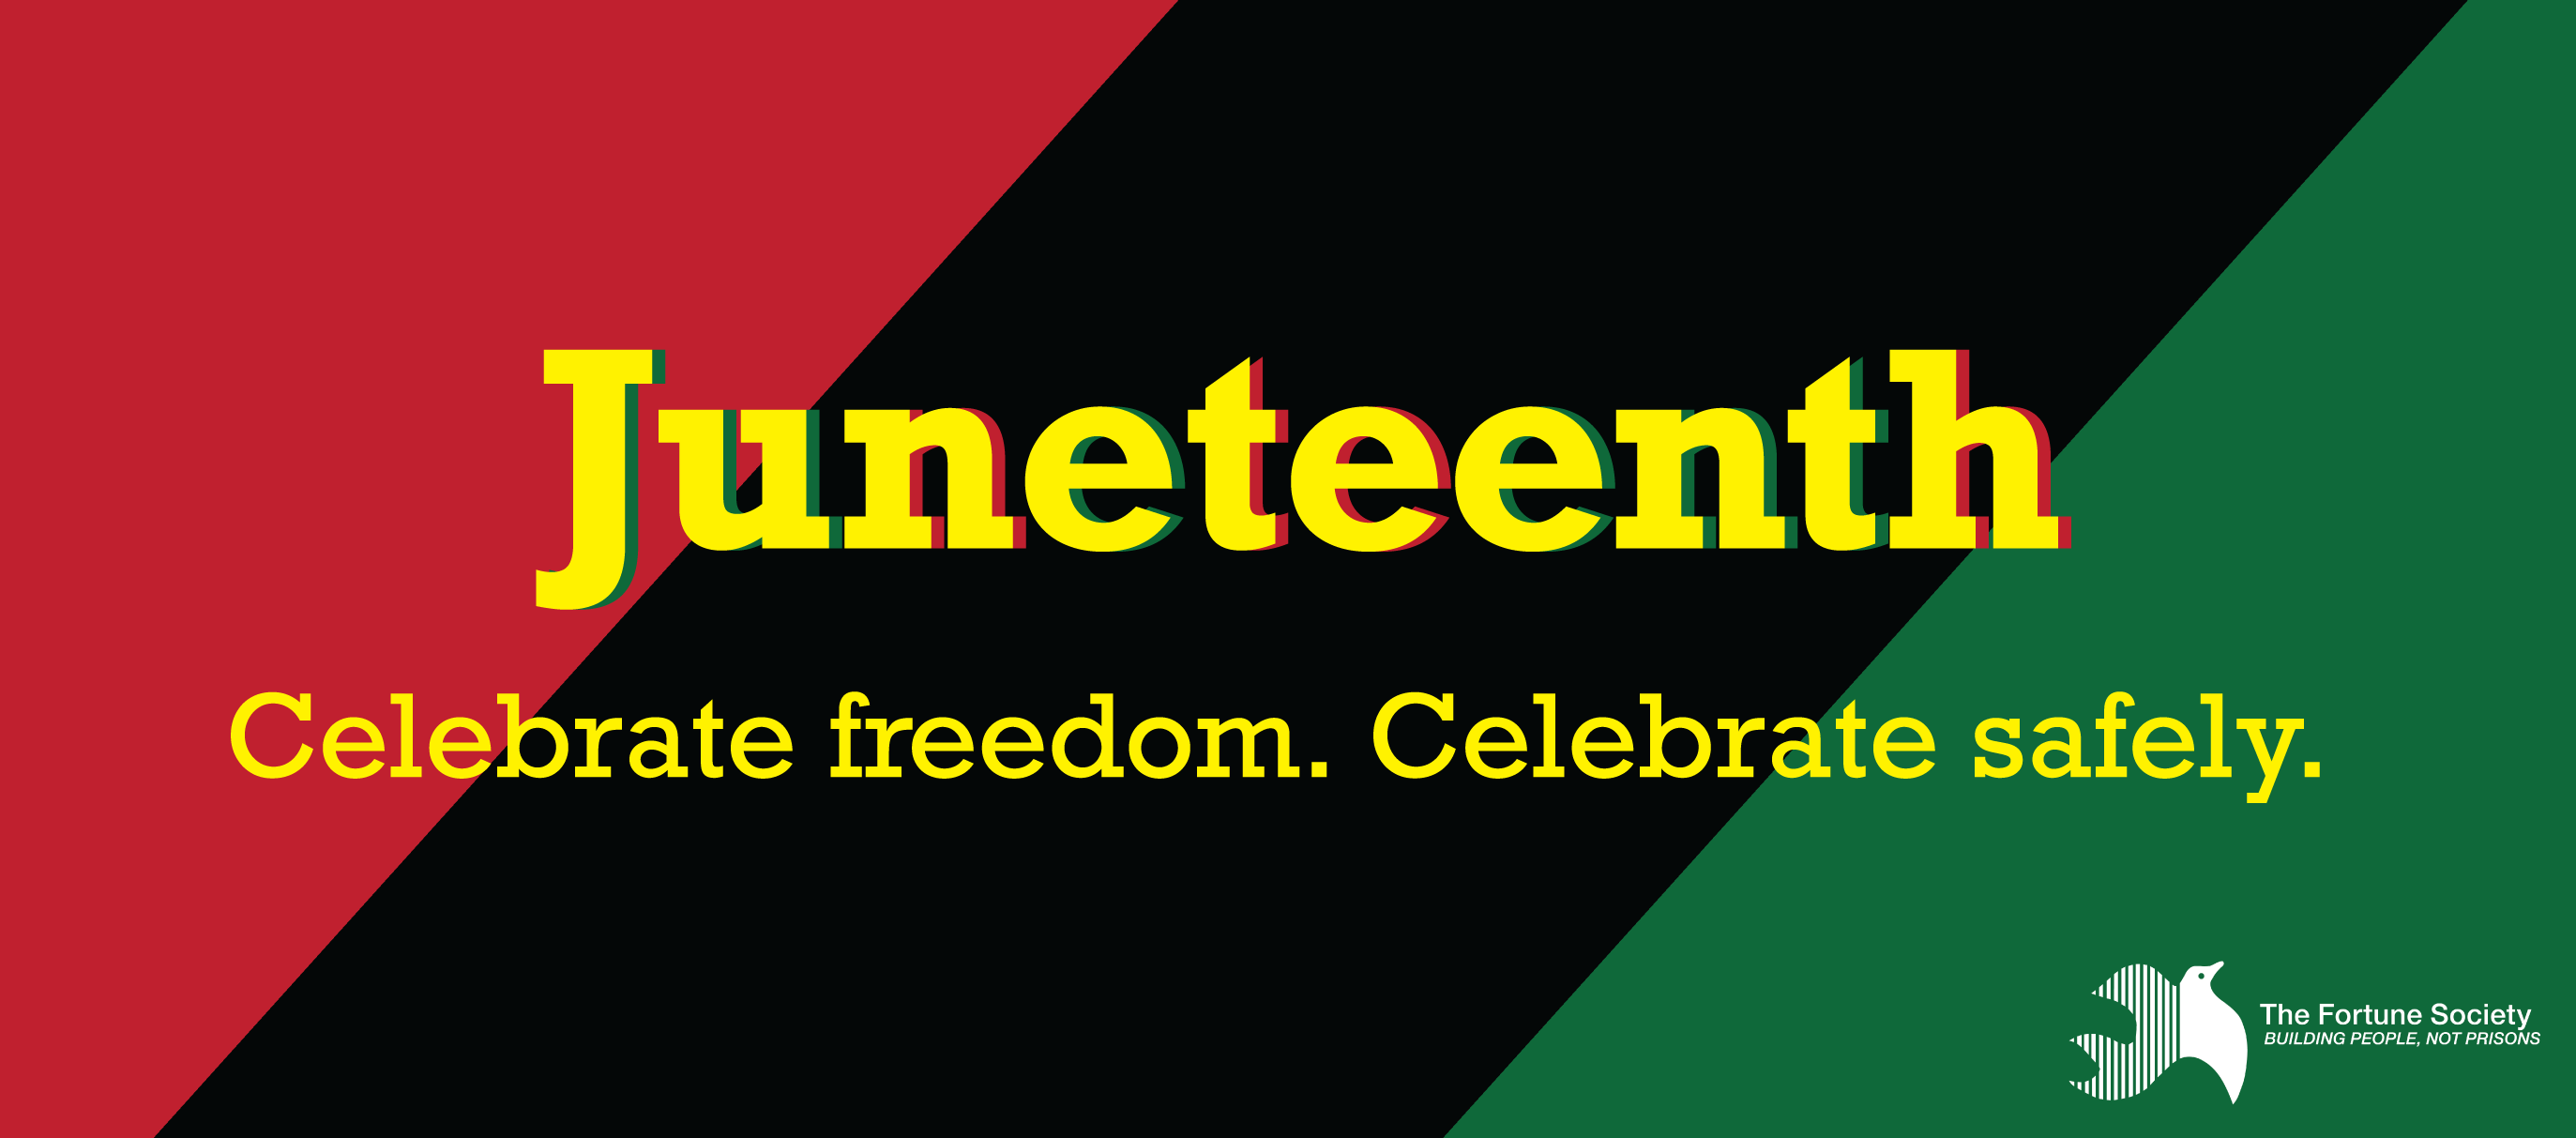 How to Honor and Celebrate Juneteenth